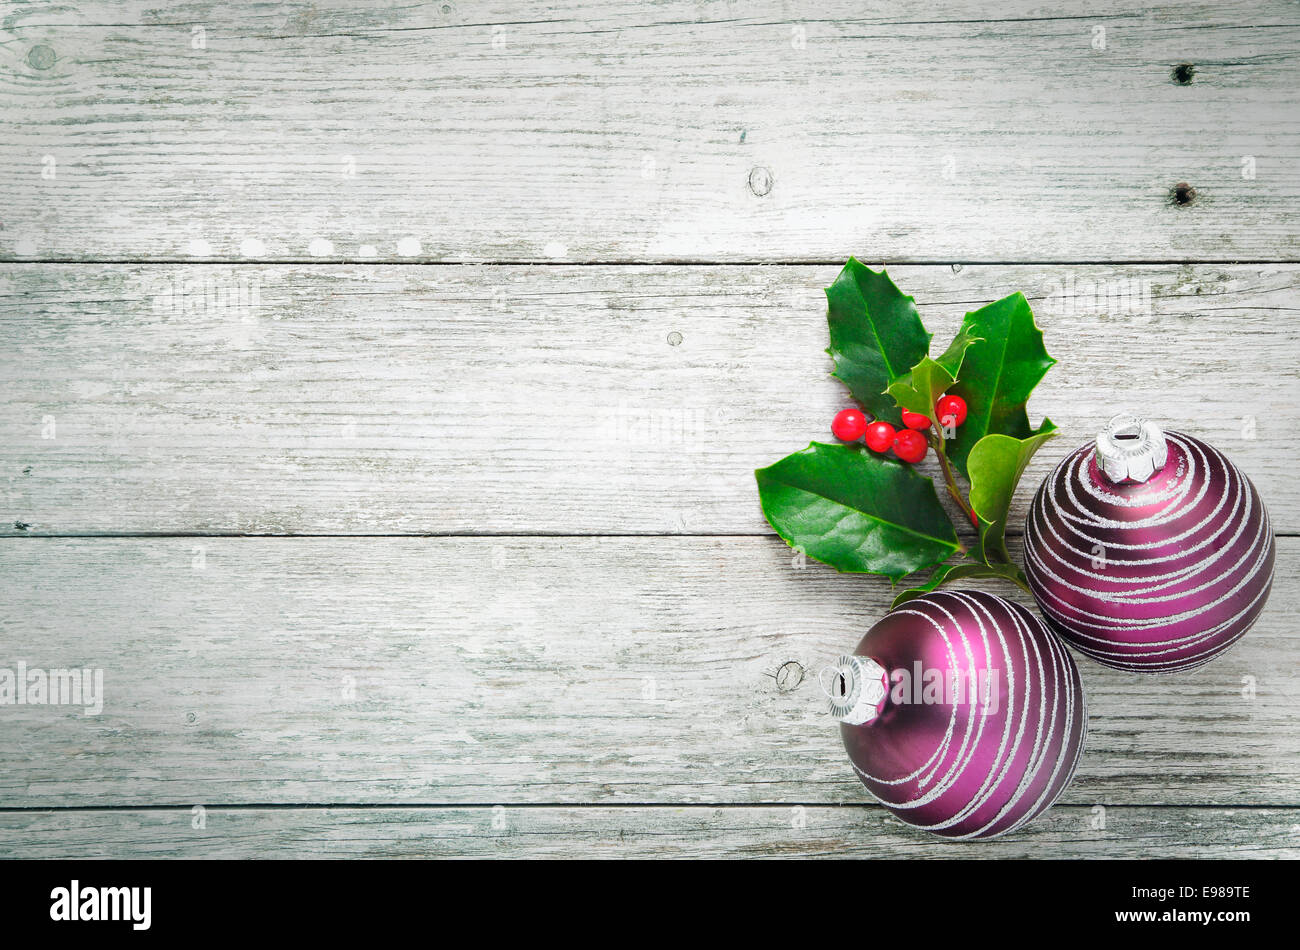 Christmas holly and pretty purple baubles with a spiral pattern on rustic wooden white painted boards with woodgrain Stock Photo